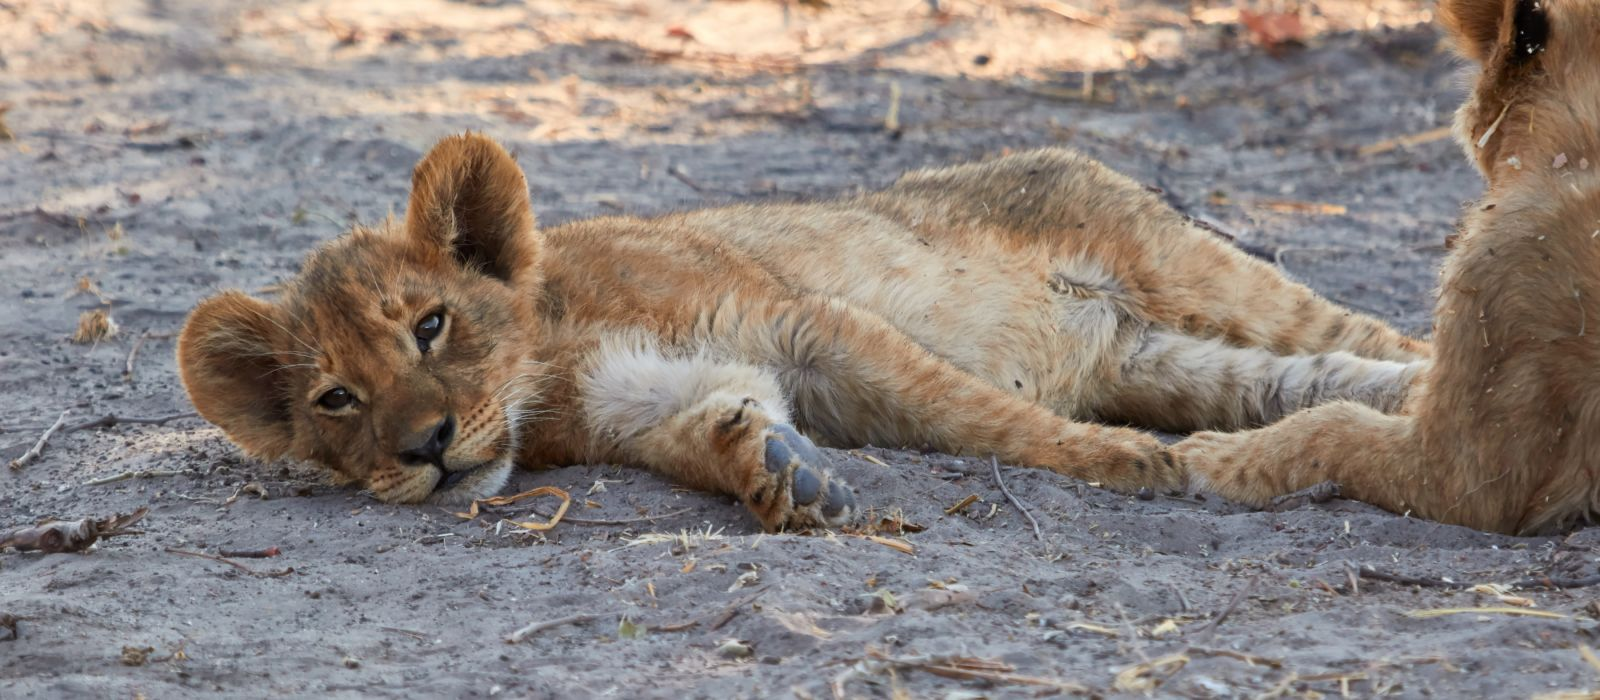 Two lion cubs, Botswana, Africa